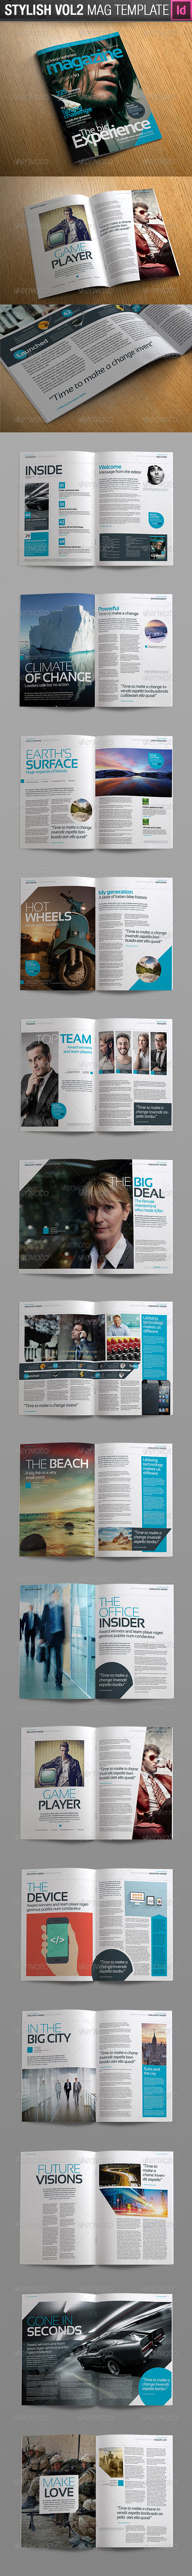 GraphicRiver Stylish Volume 2 InDesign Magazine Template 7292870